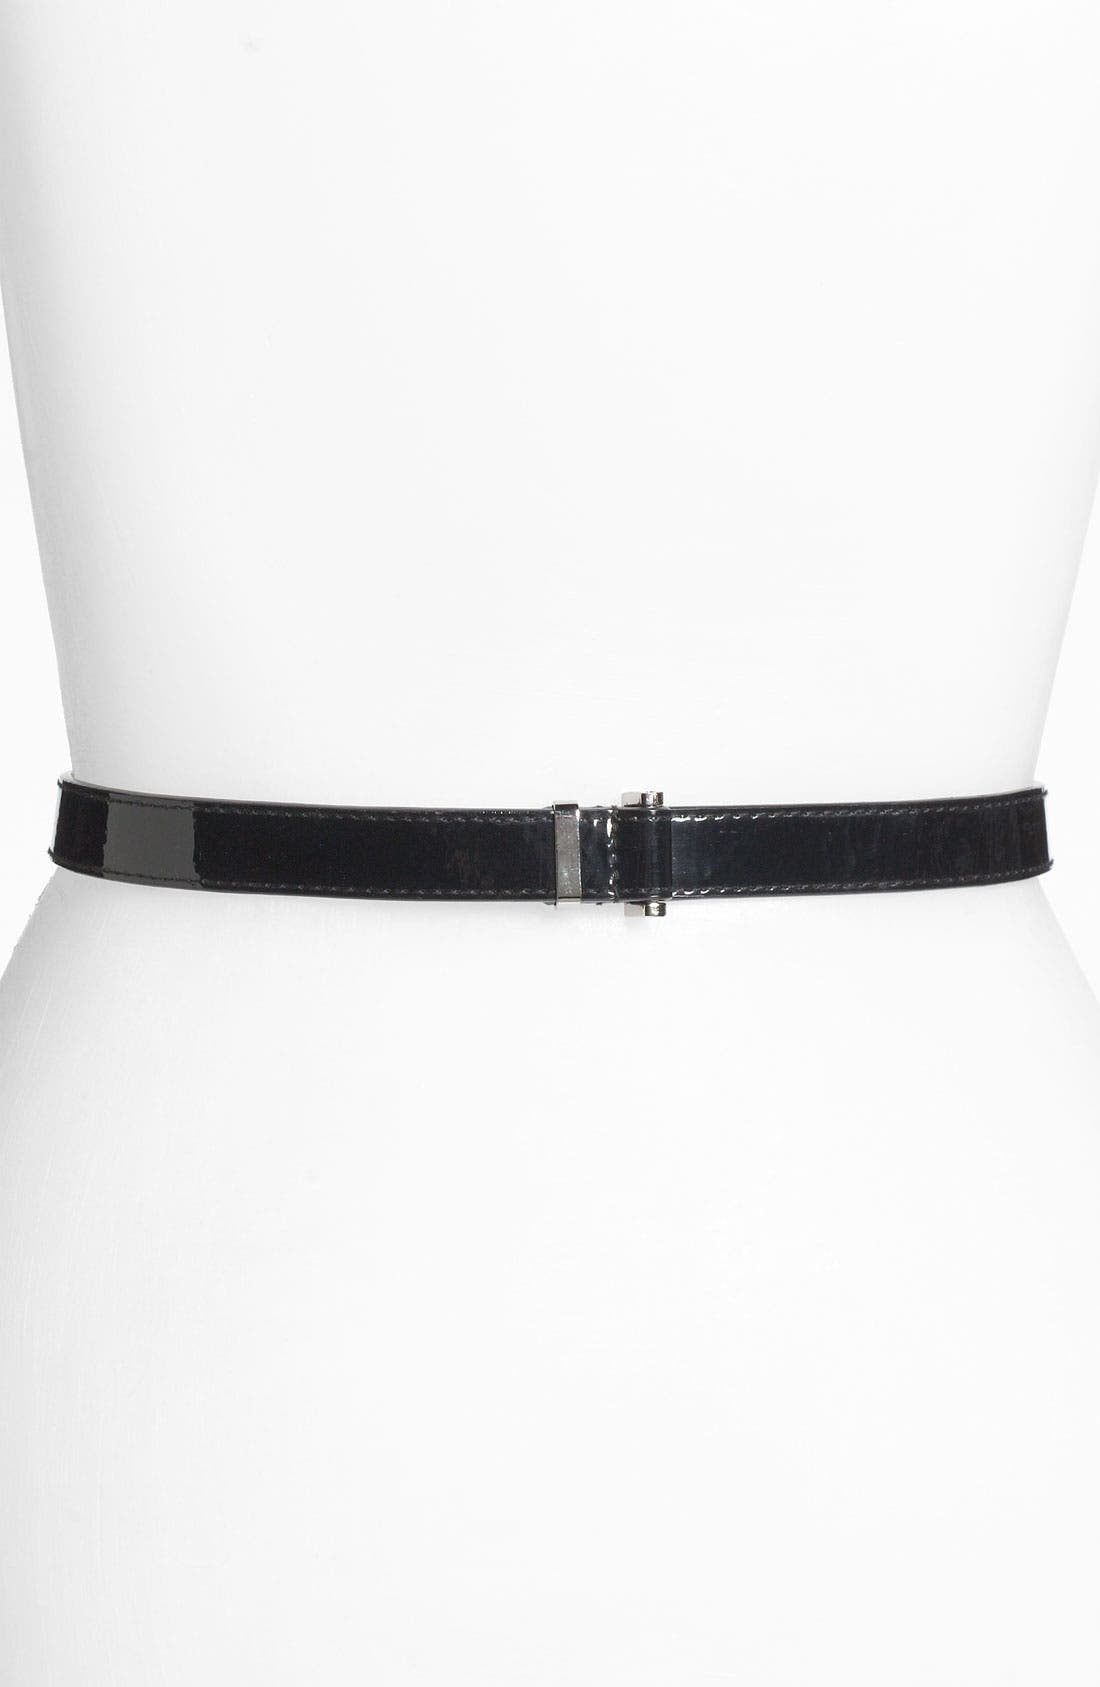 Main Image - WCM Patent Toggle Belt